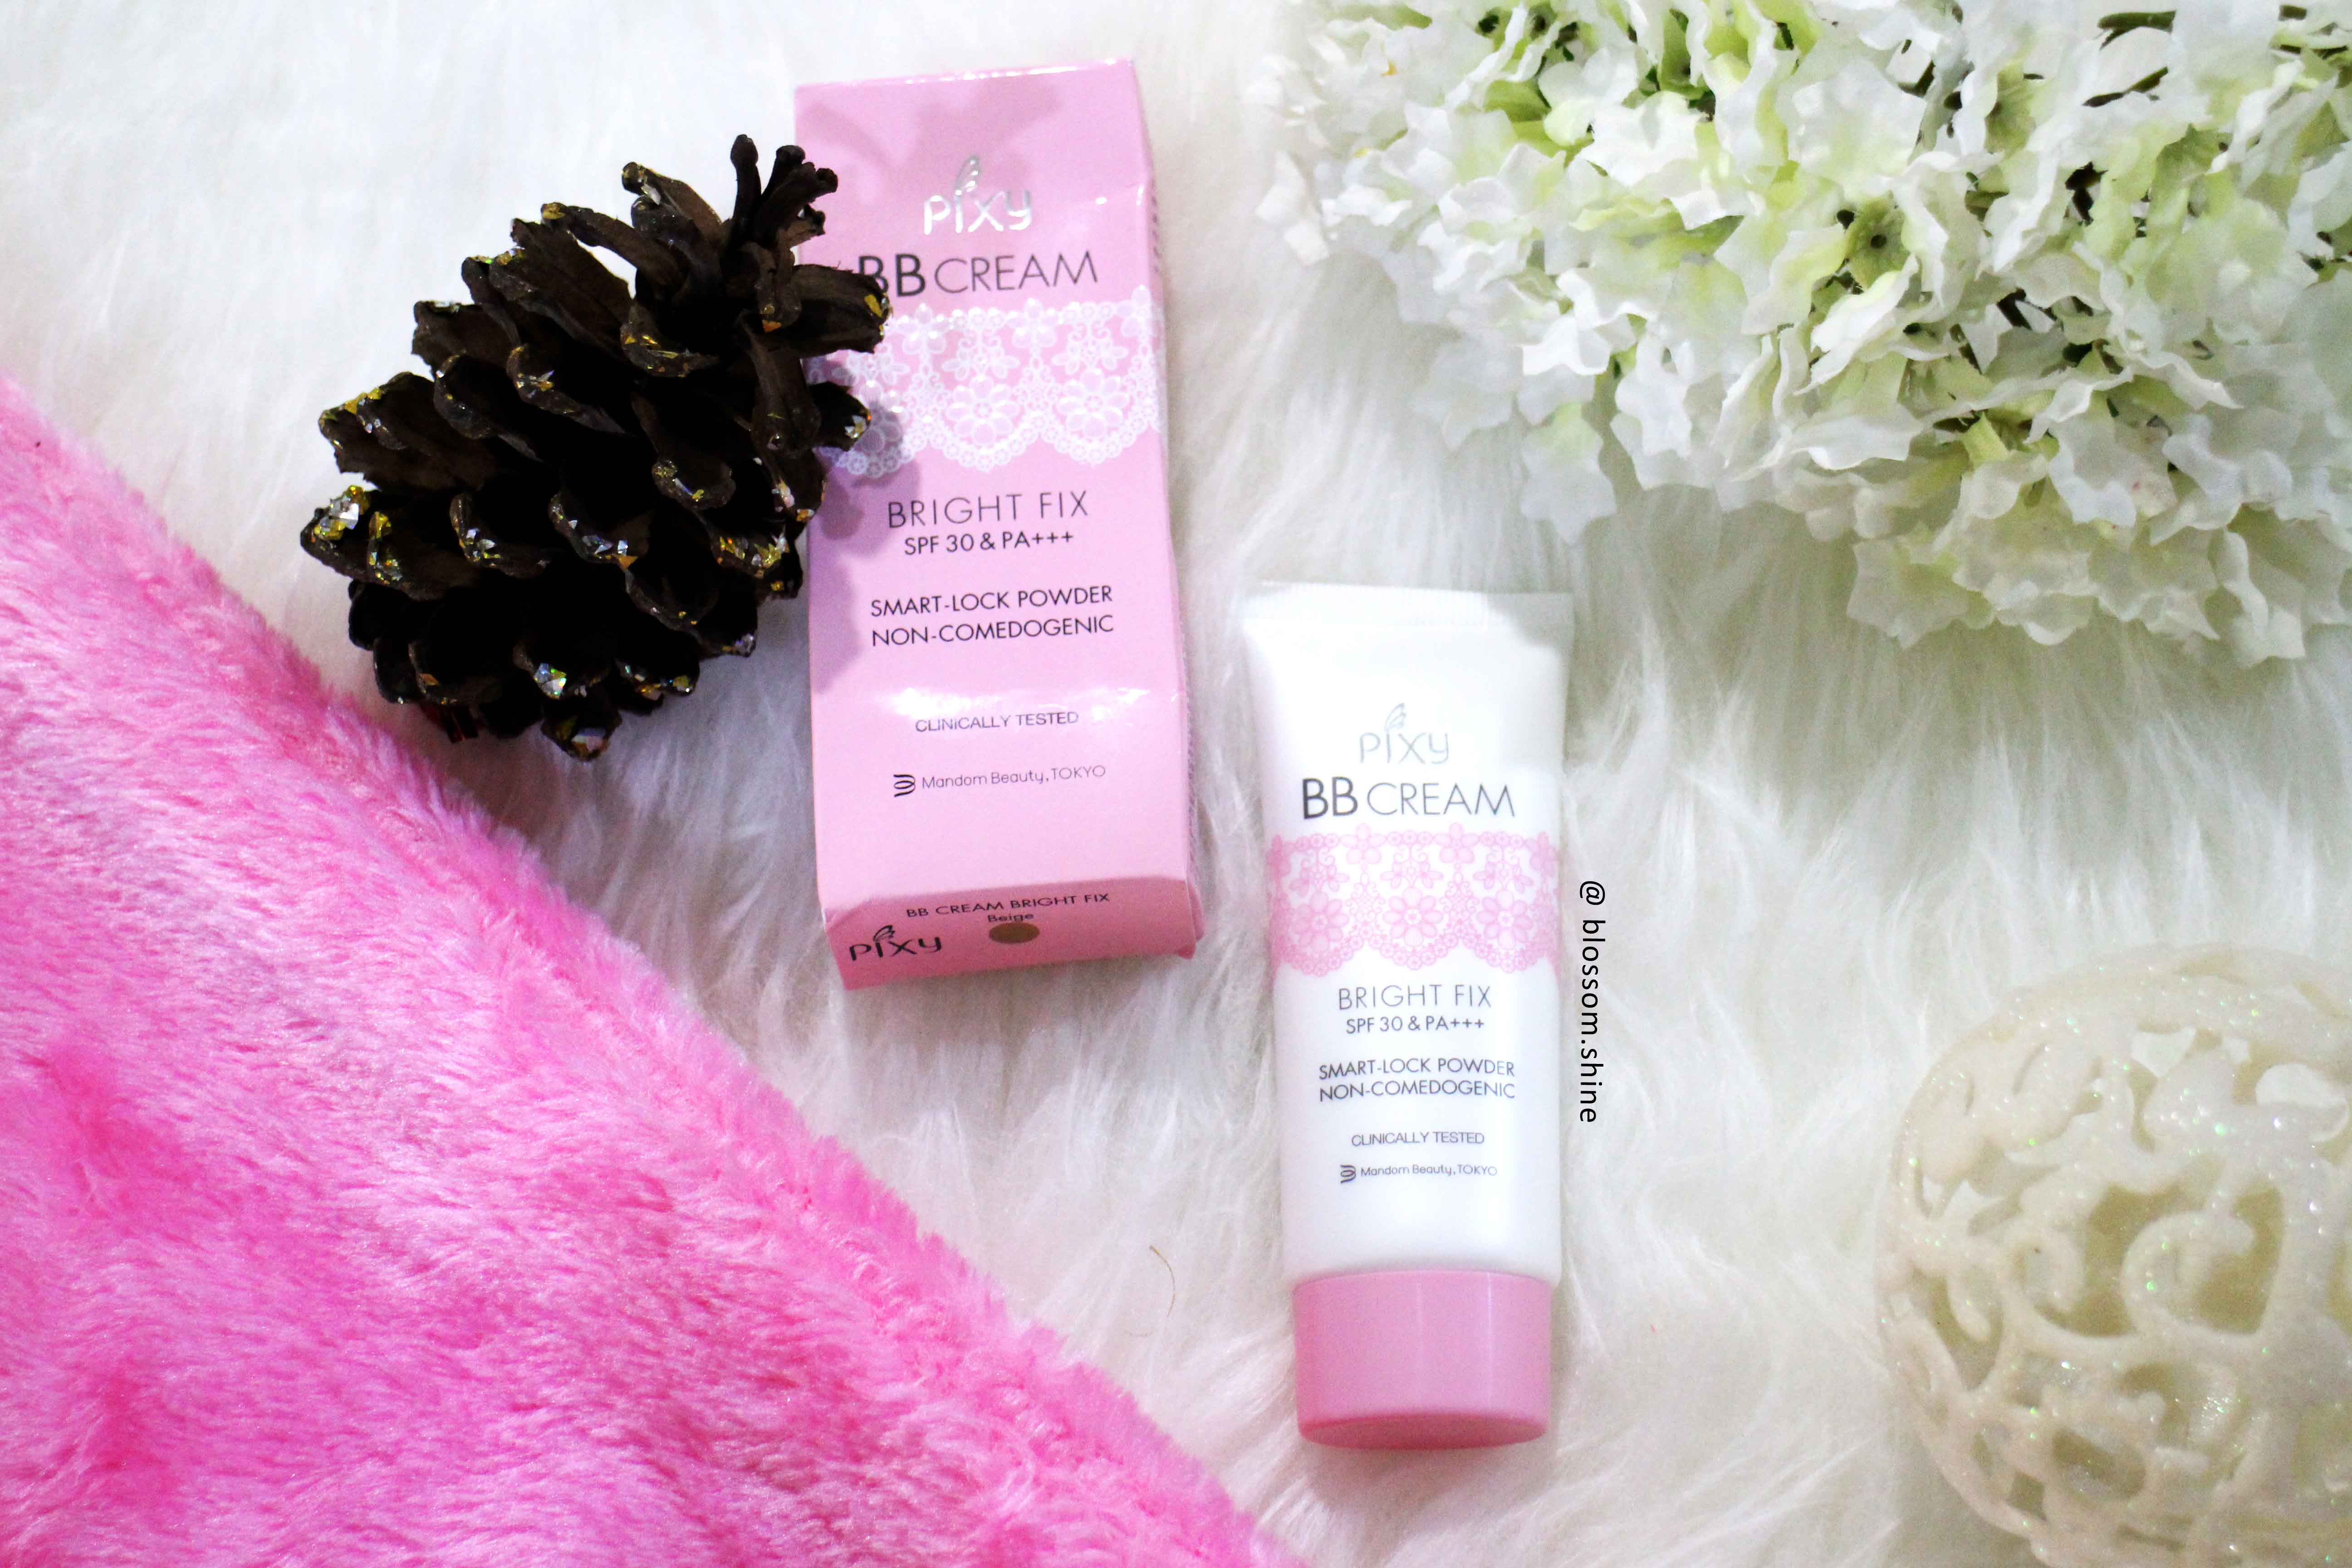 Face Makeup For Oily Skin 2: Pixy BB Cream [Makeup Review]